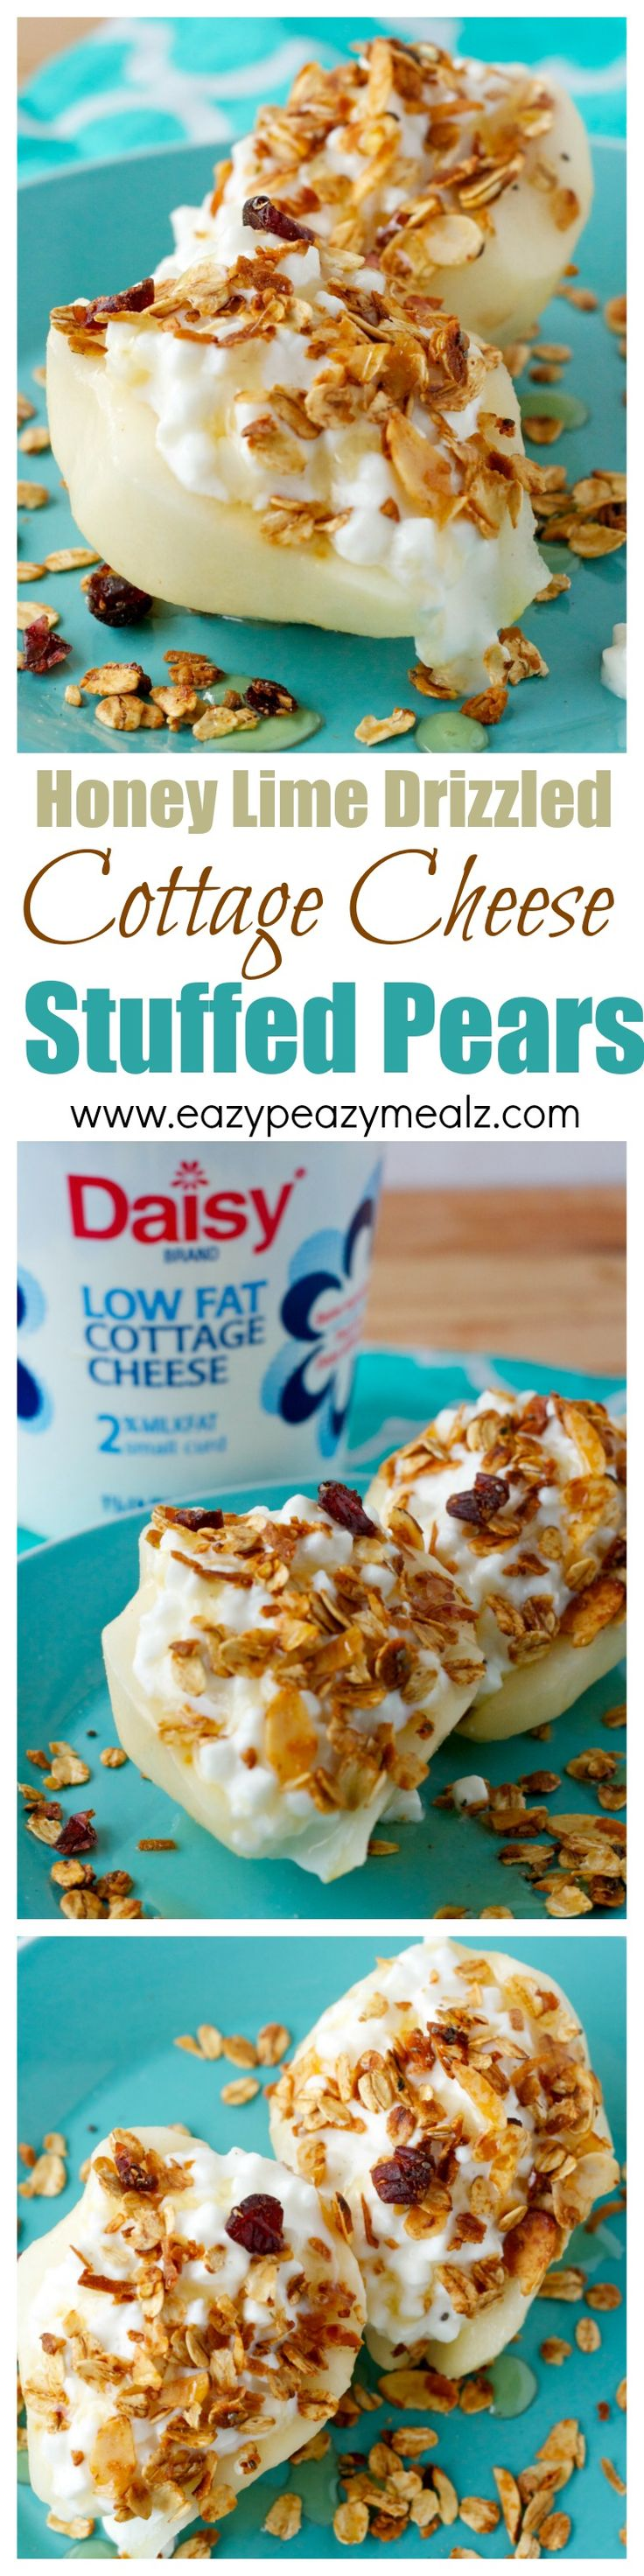 5 minute, clean eating breakfast full of protein, these honey lime drizzled cottage cheese stuffed pears are the perfect go-to breakfast on busy days. #ad - Eazy Peazy Mealz